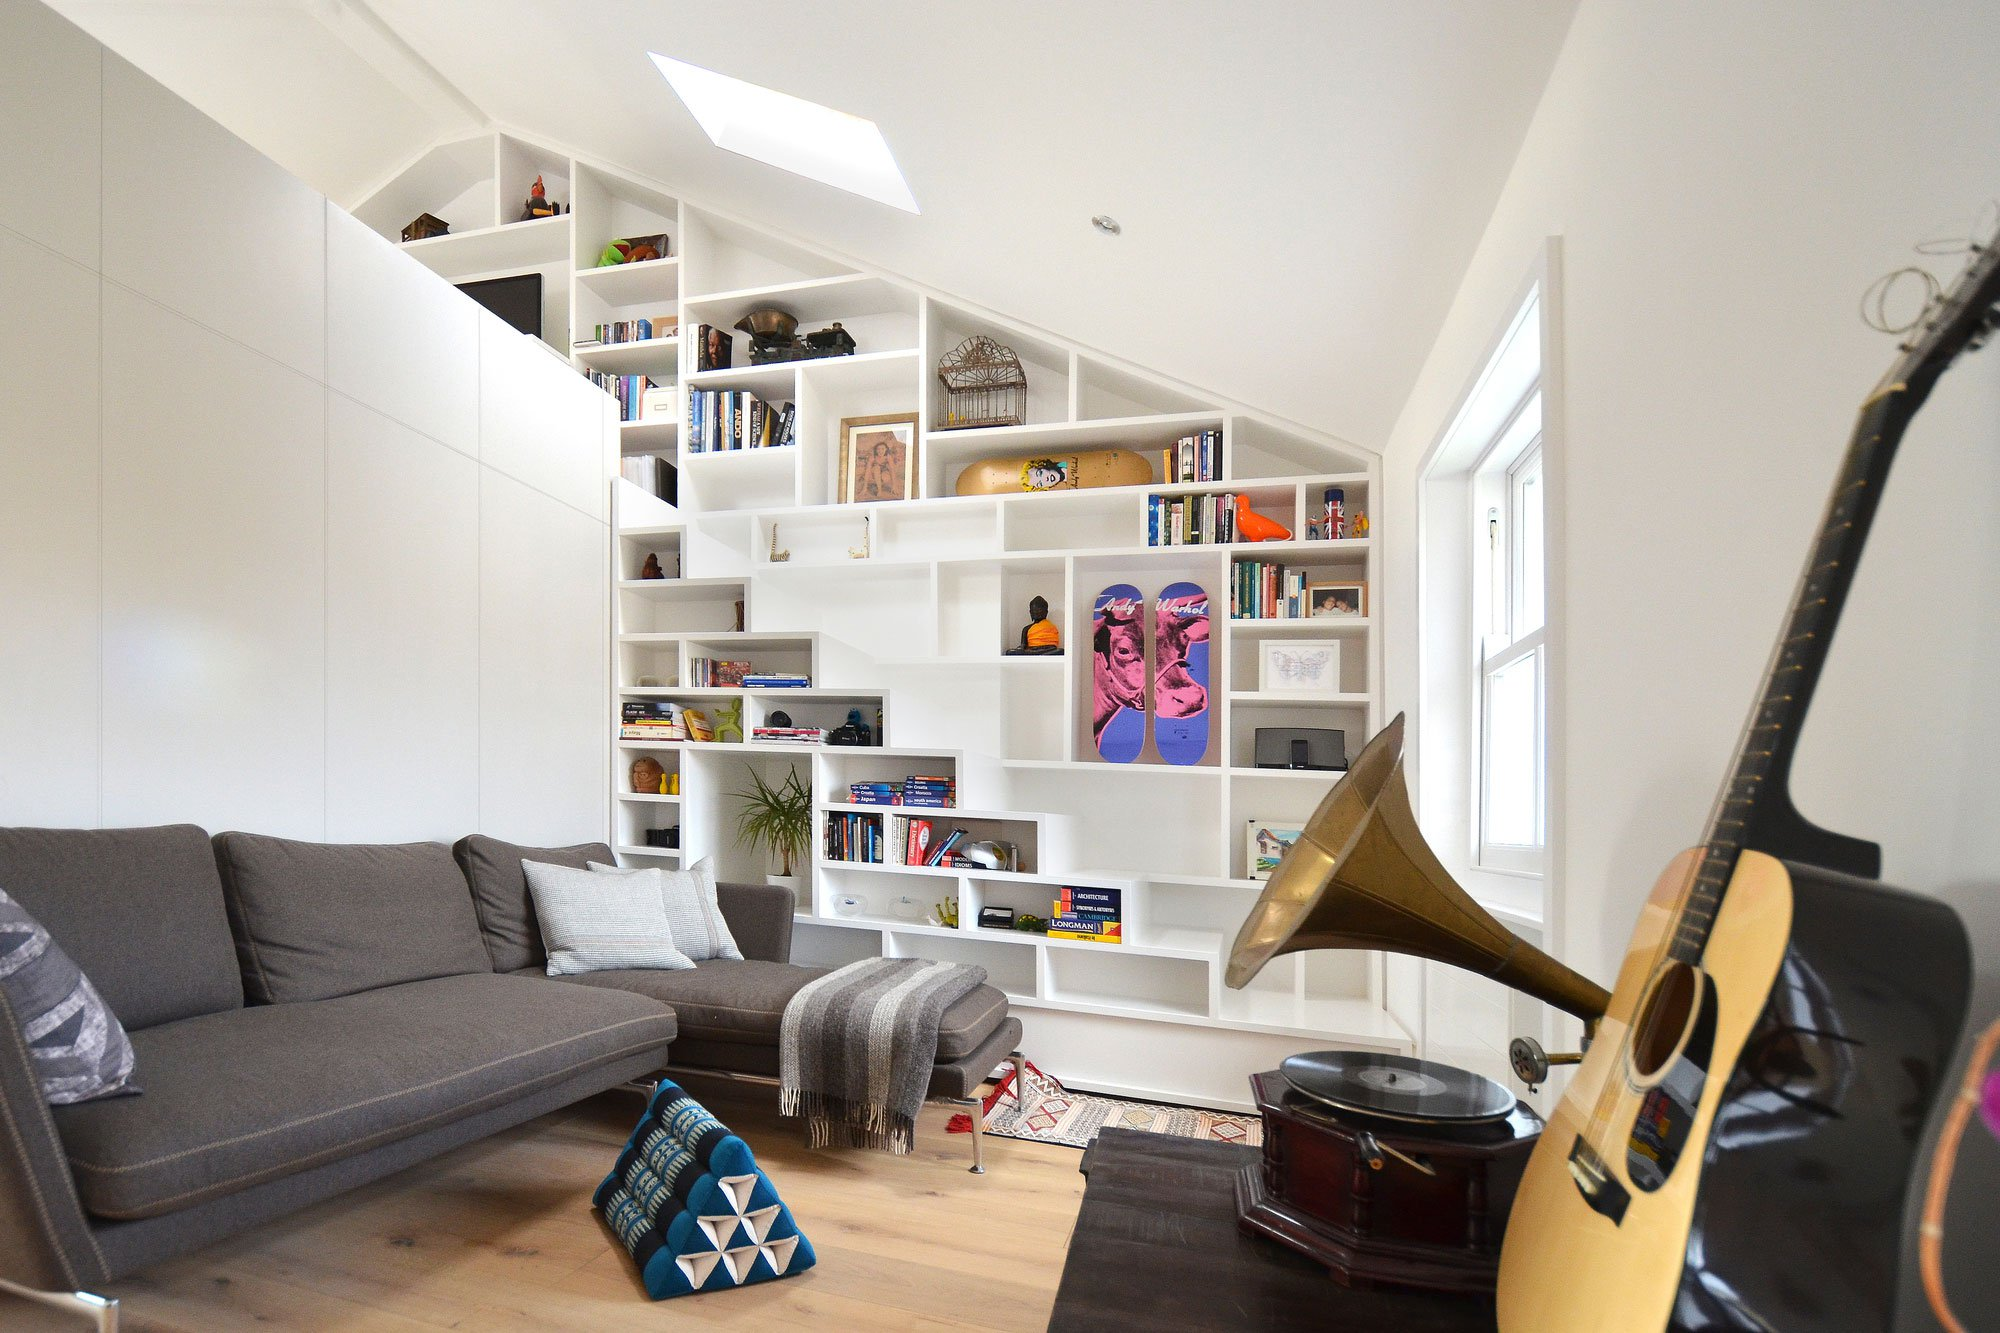 loft-space-in-camden-09